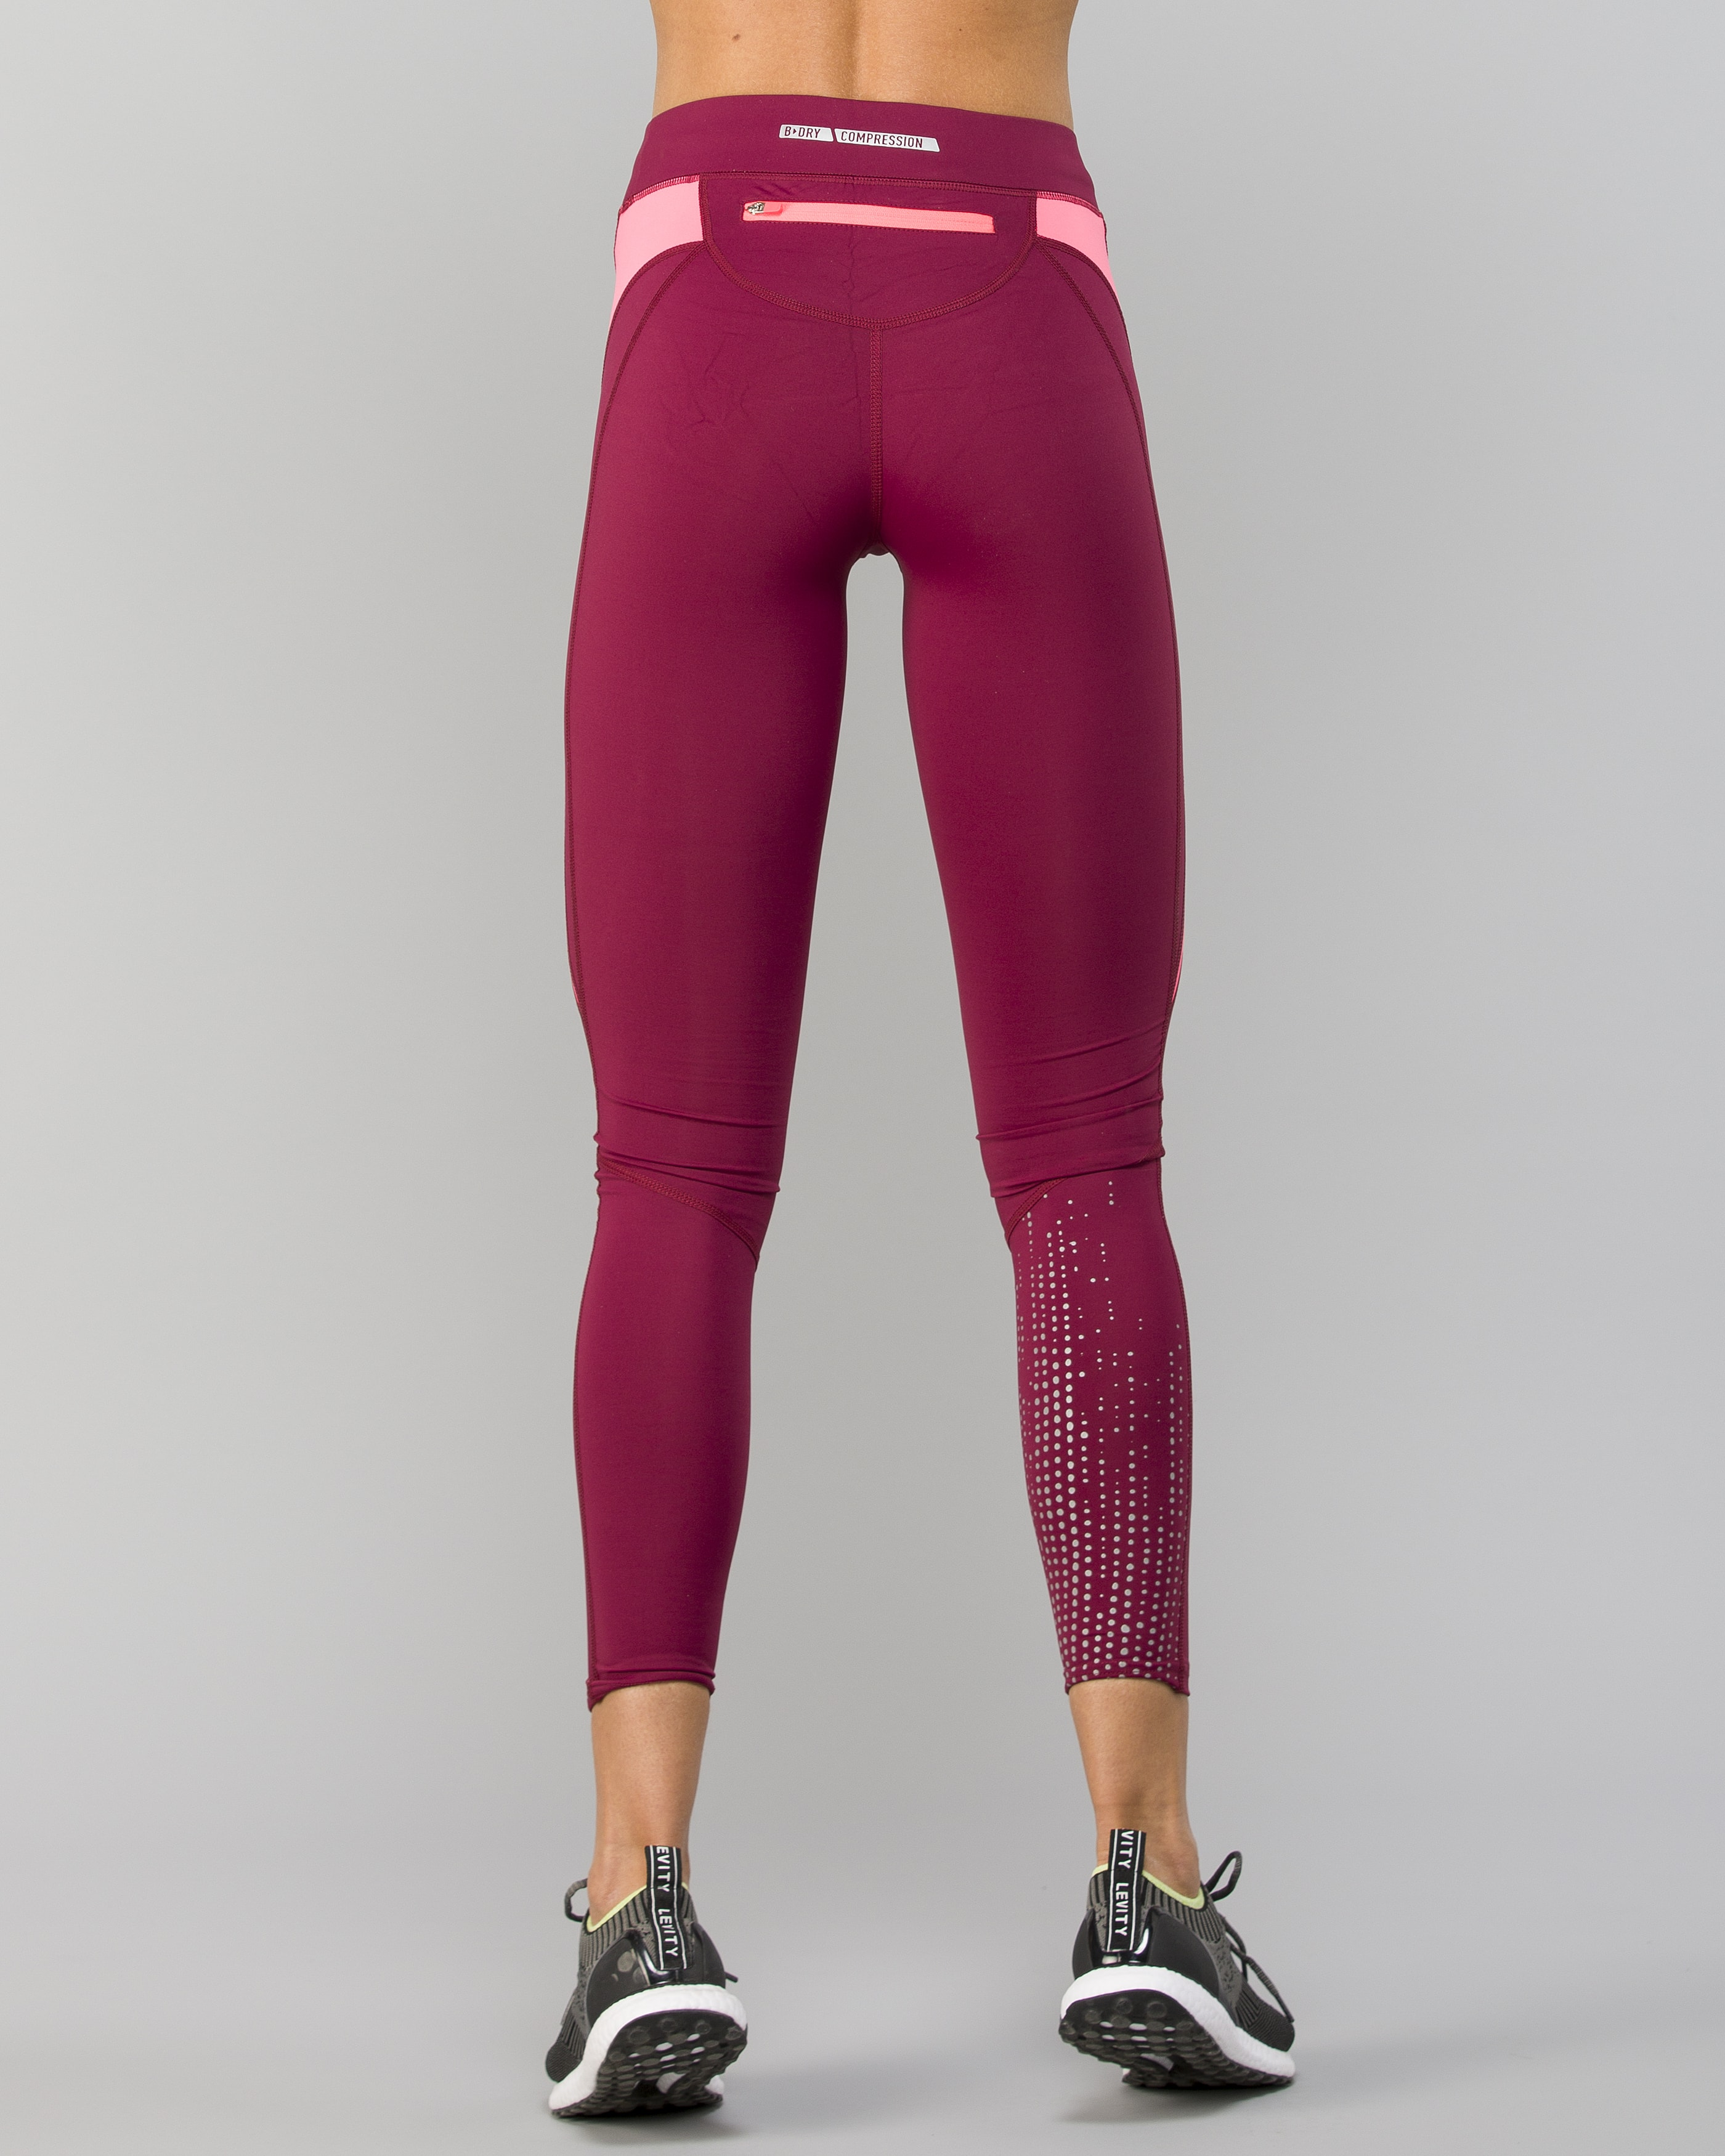 6596ec7242 Only Play Vibe Run Compression Tights - Rhododendron - Tights.no